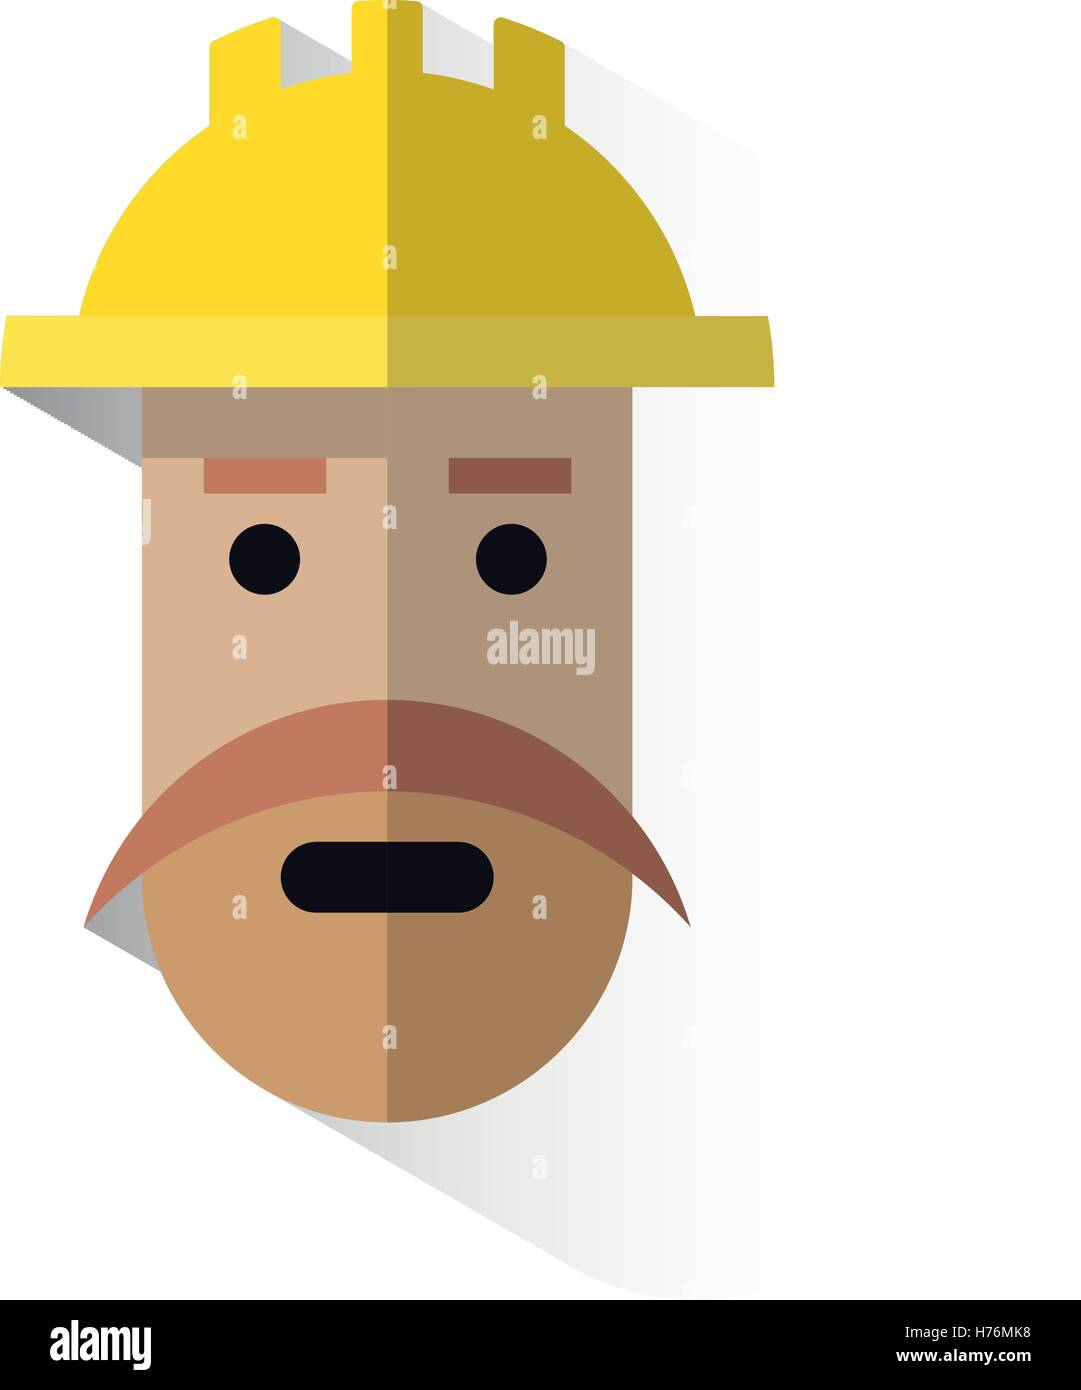 worker's face icon with helmet - Stock Vector